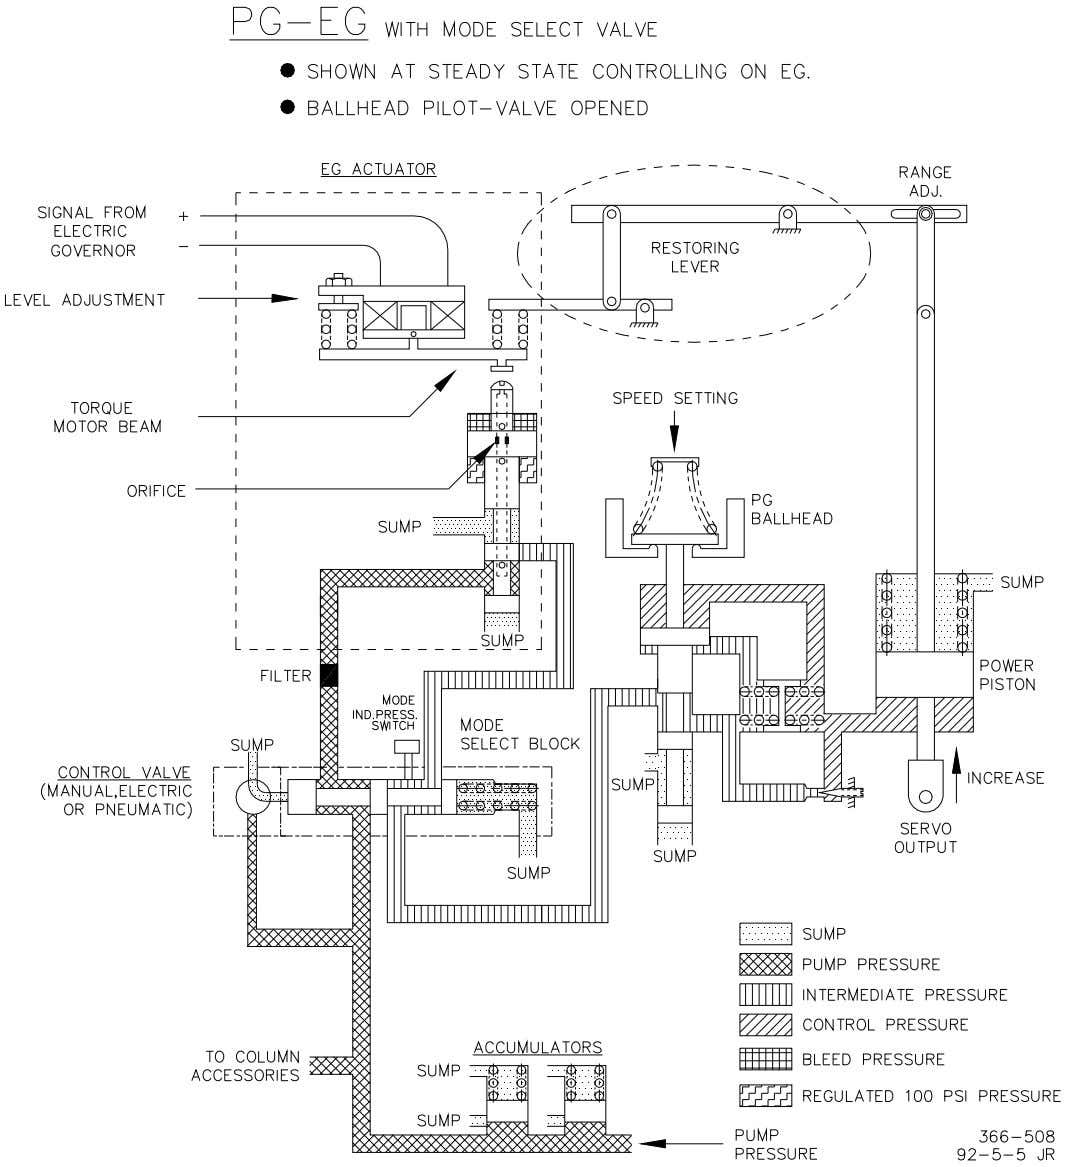 Manual 36637 PG-EG Integral EG Actuator for PG Governors Figure 3-4. PG-EG Schematic, with Mode Select